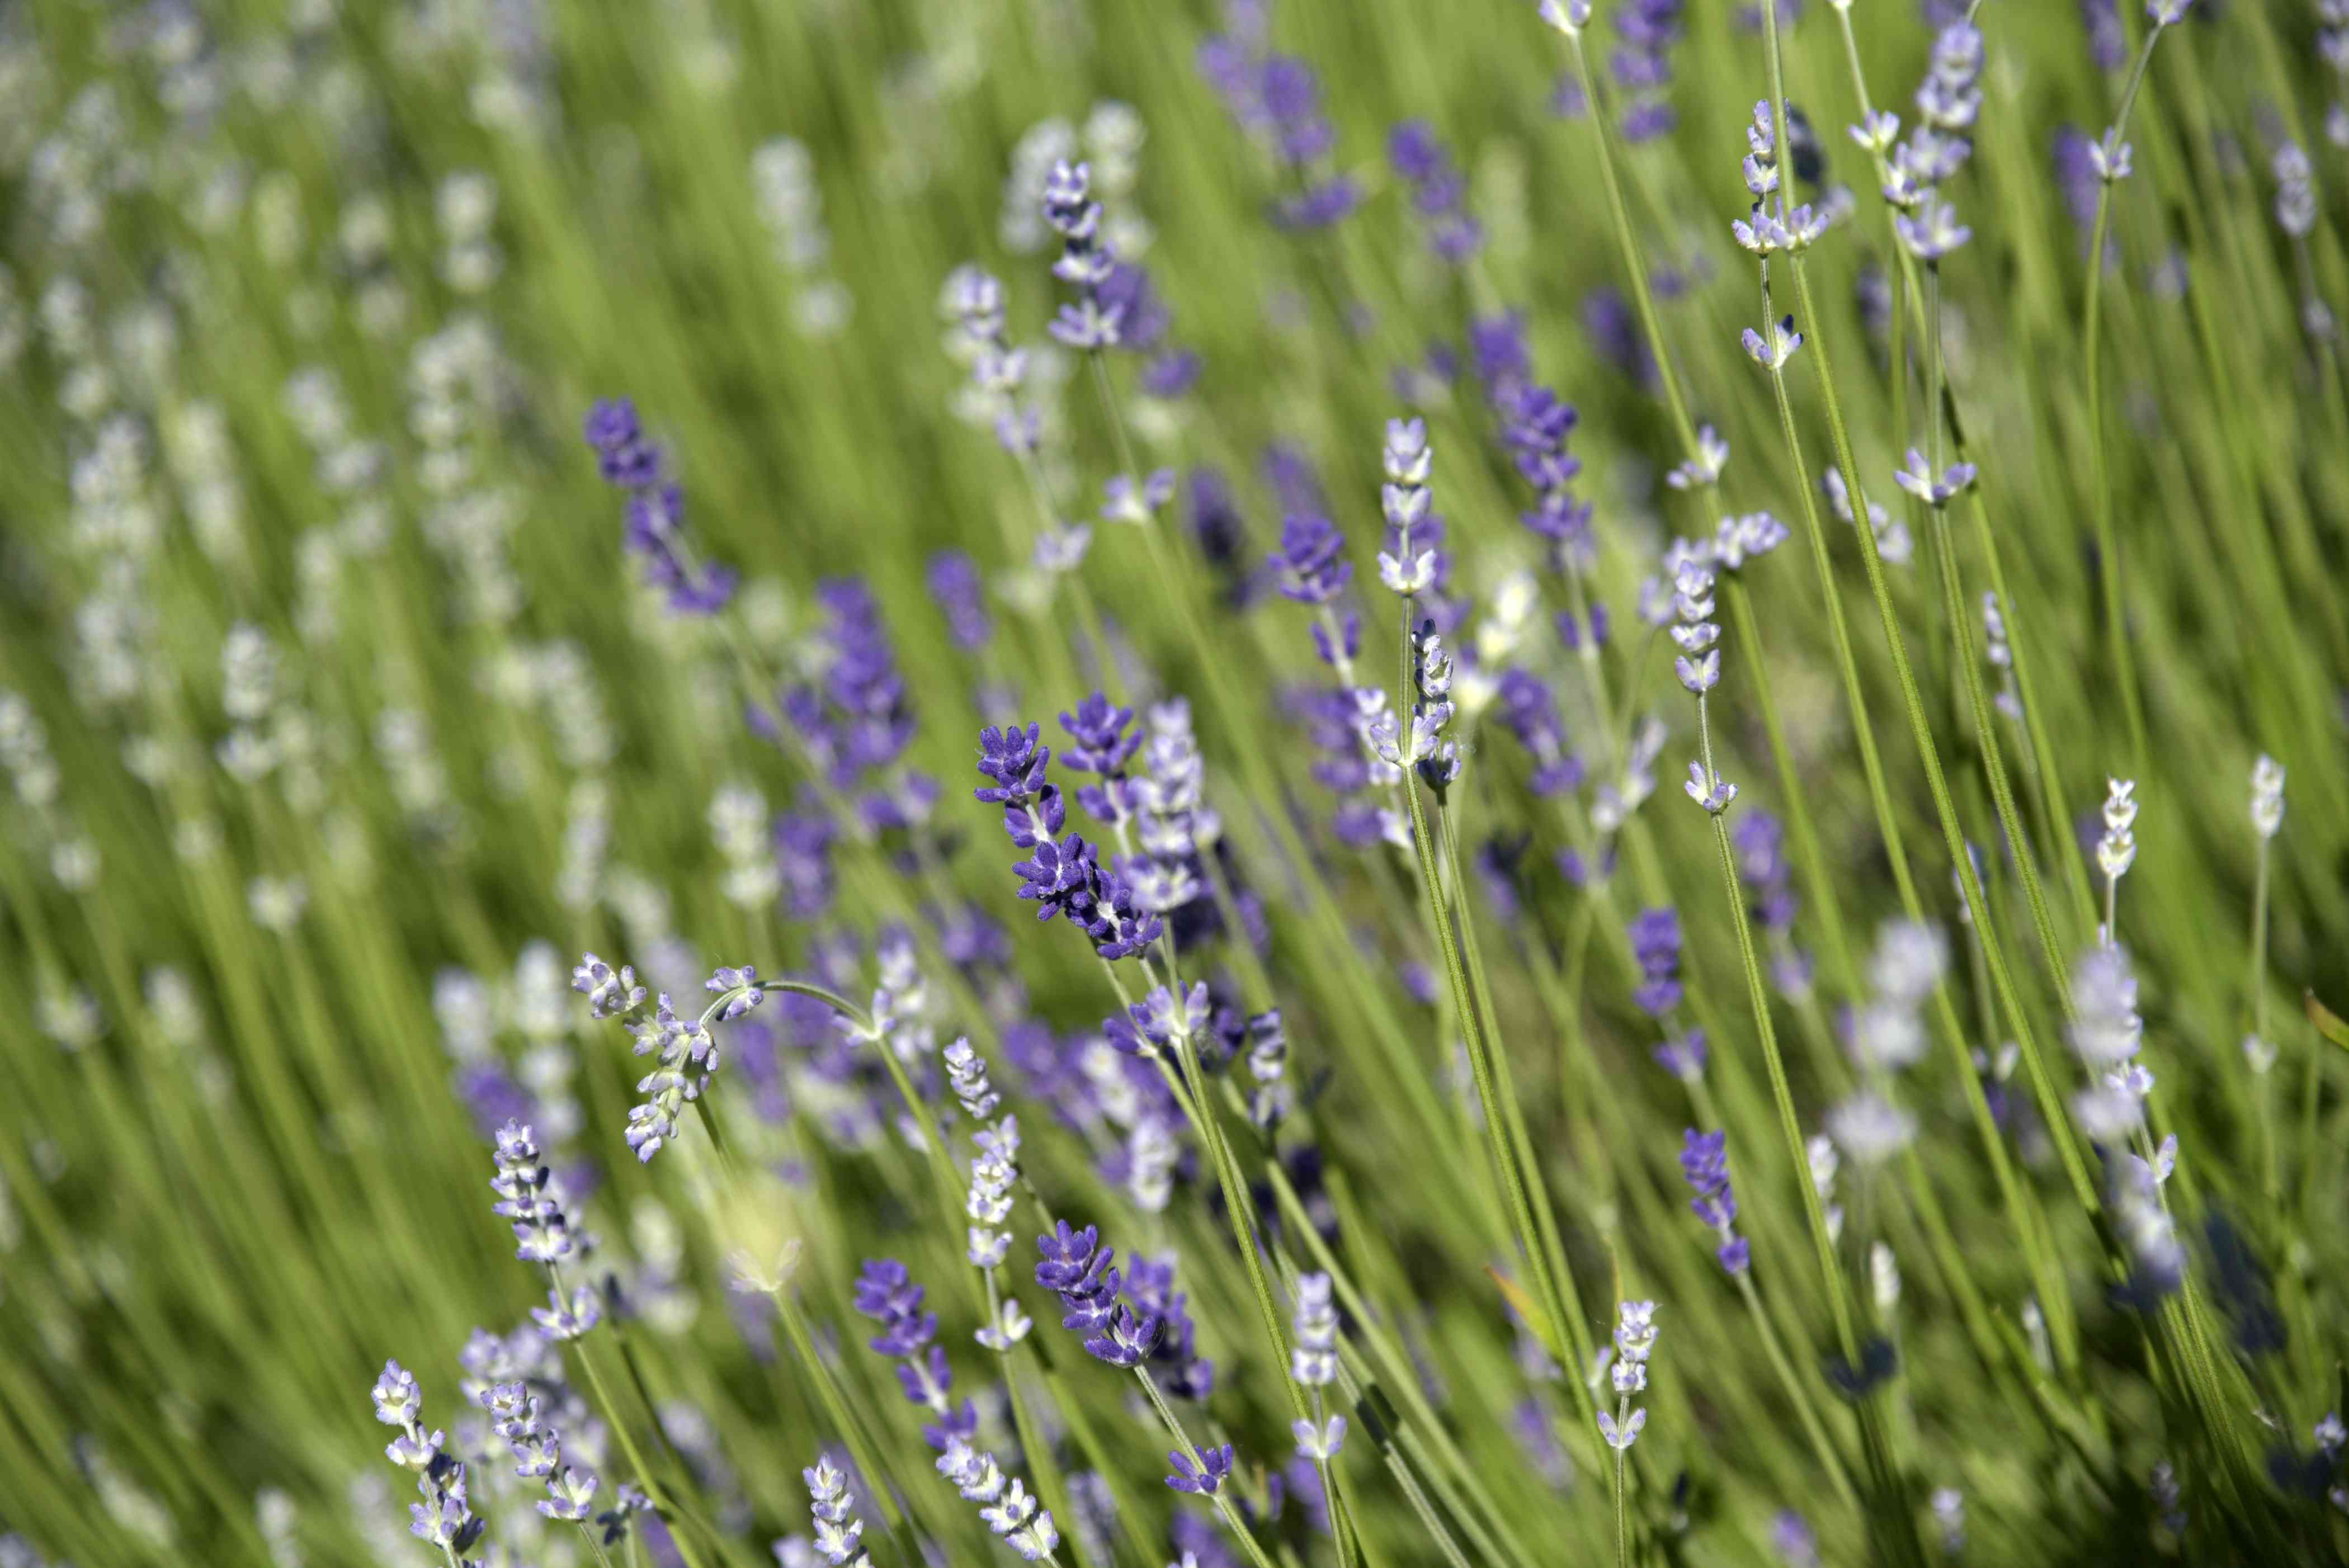 Munstead lavender plant with long thin stems and small purple and light purple blooms in sunlight